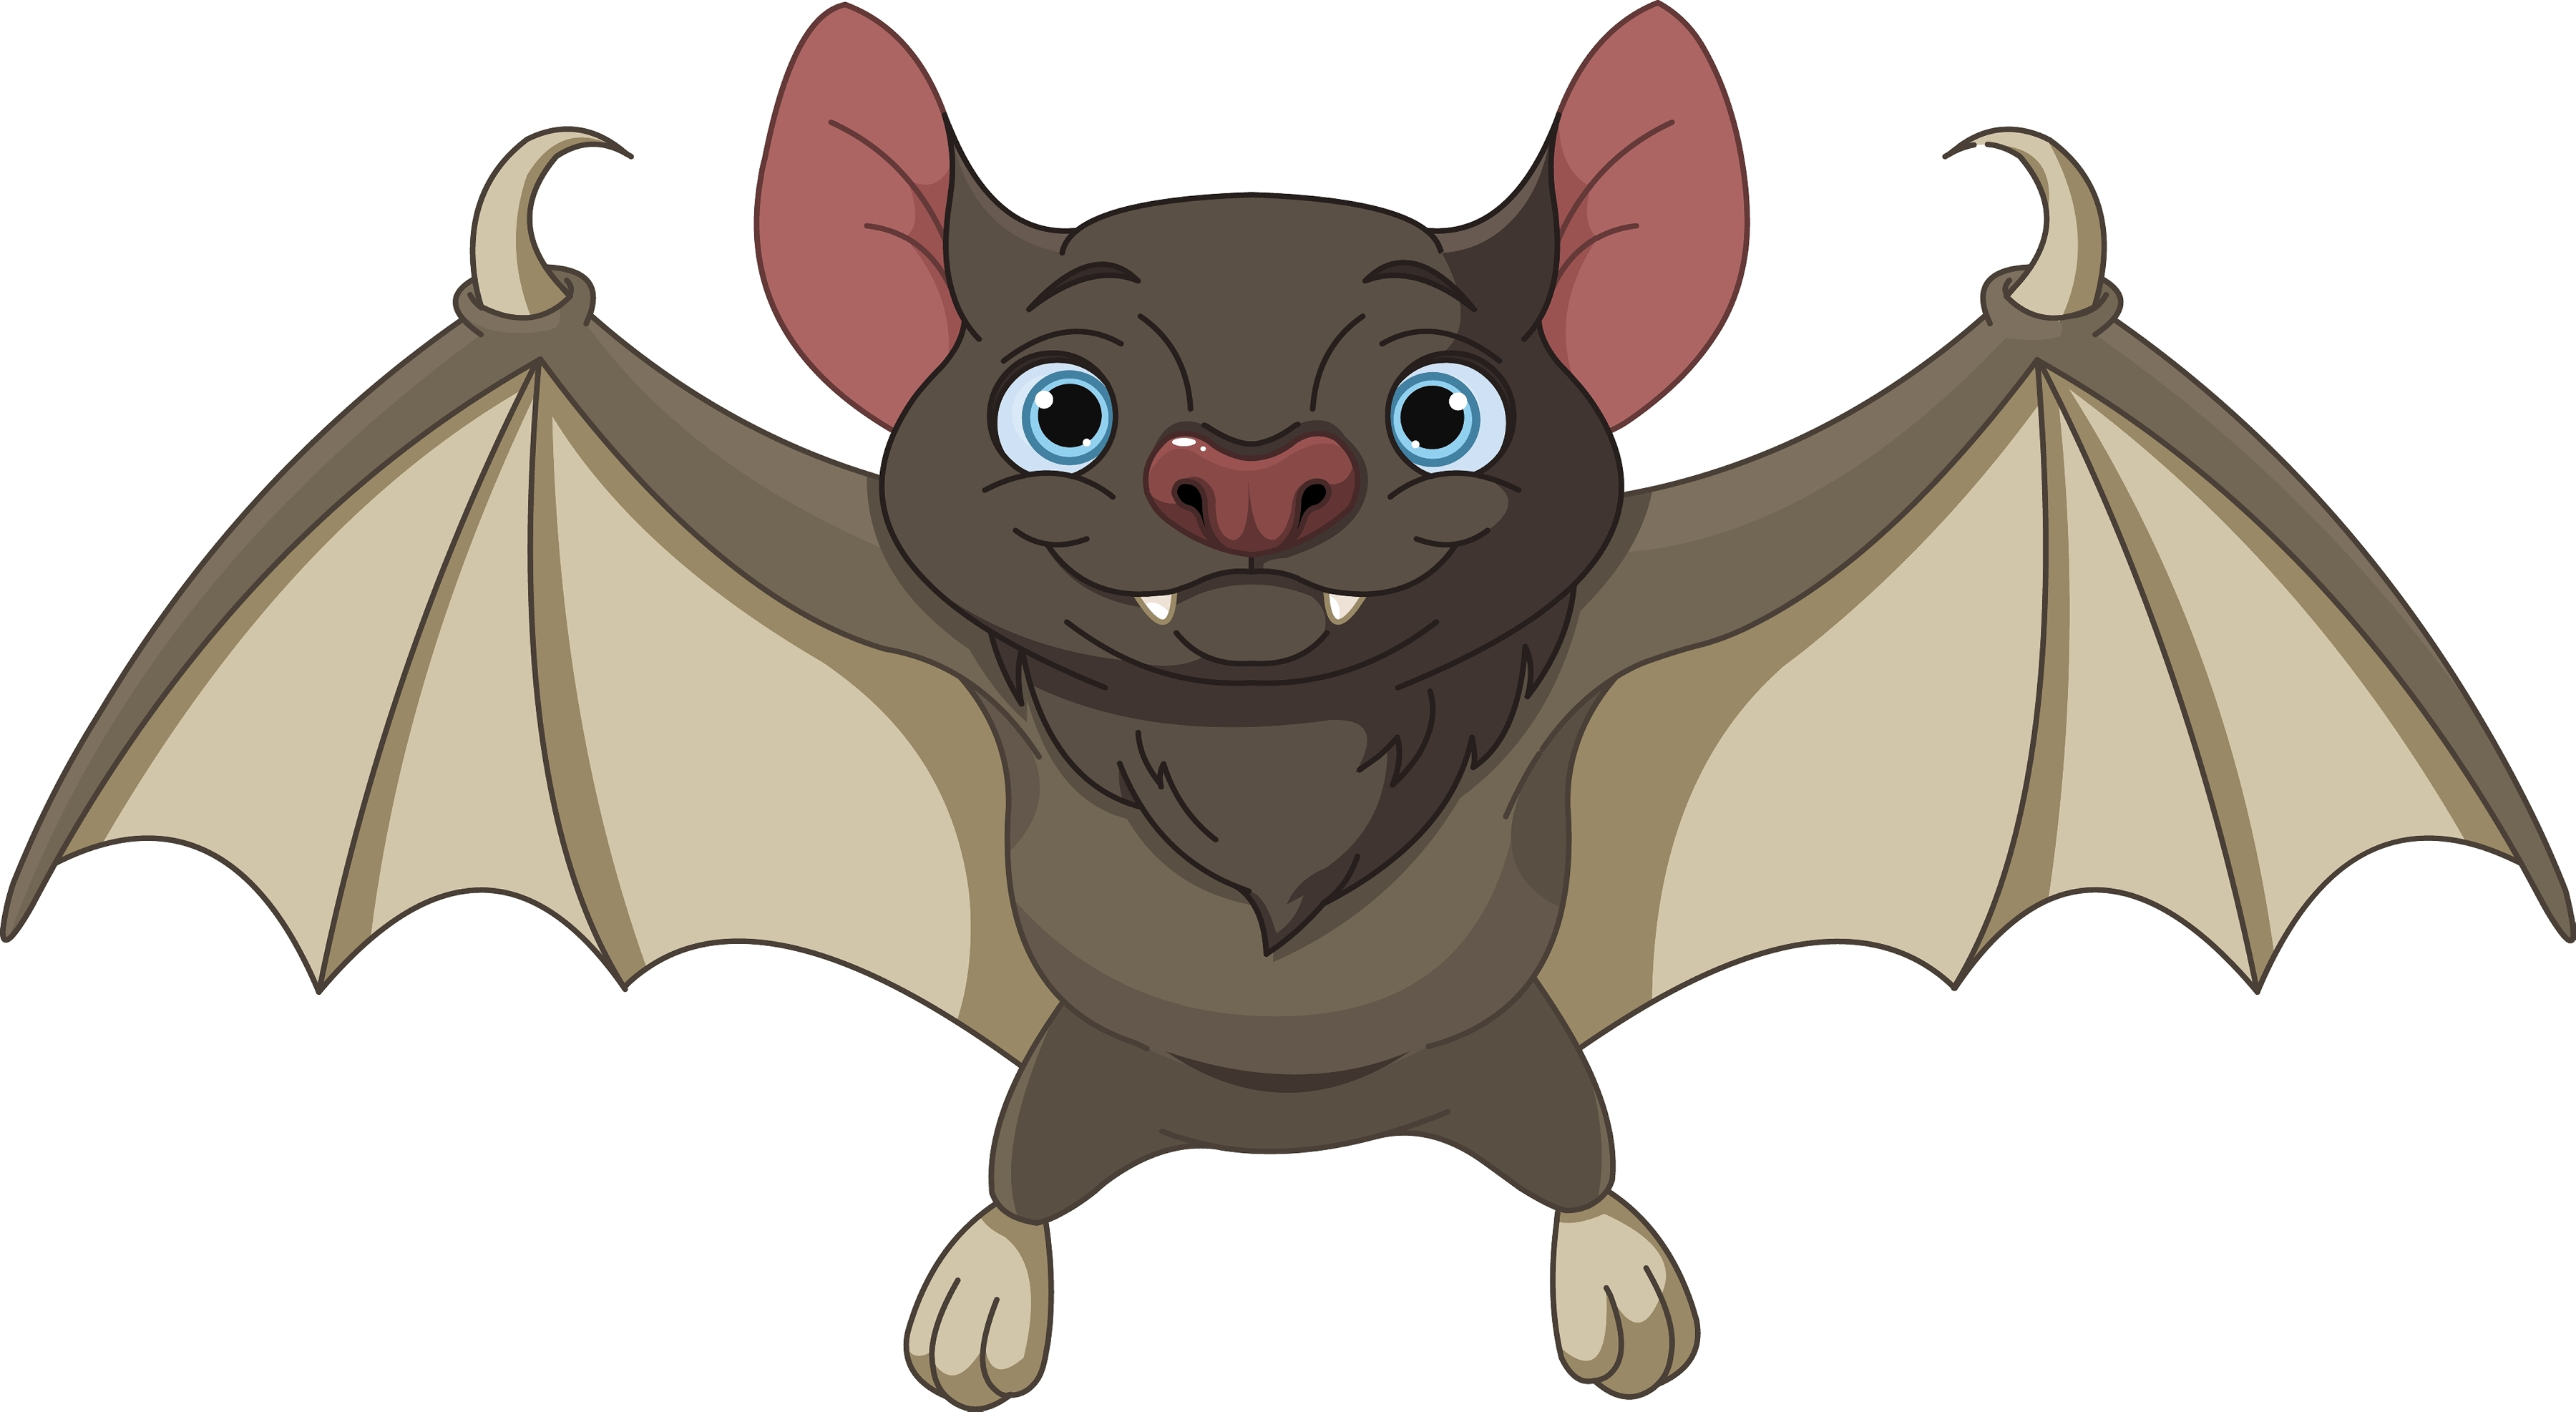 Bat Clipart & Look At Bat HQ Clip Art Images.